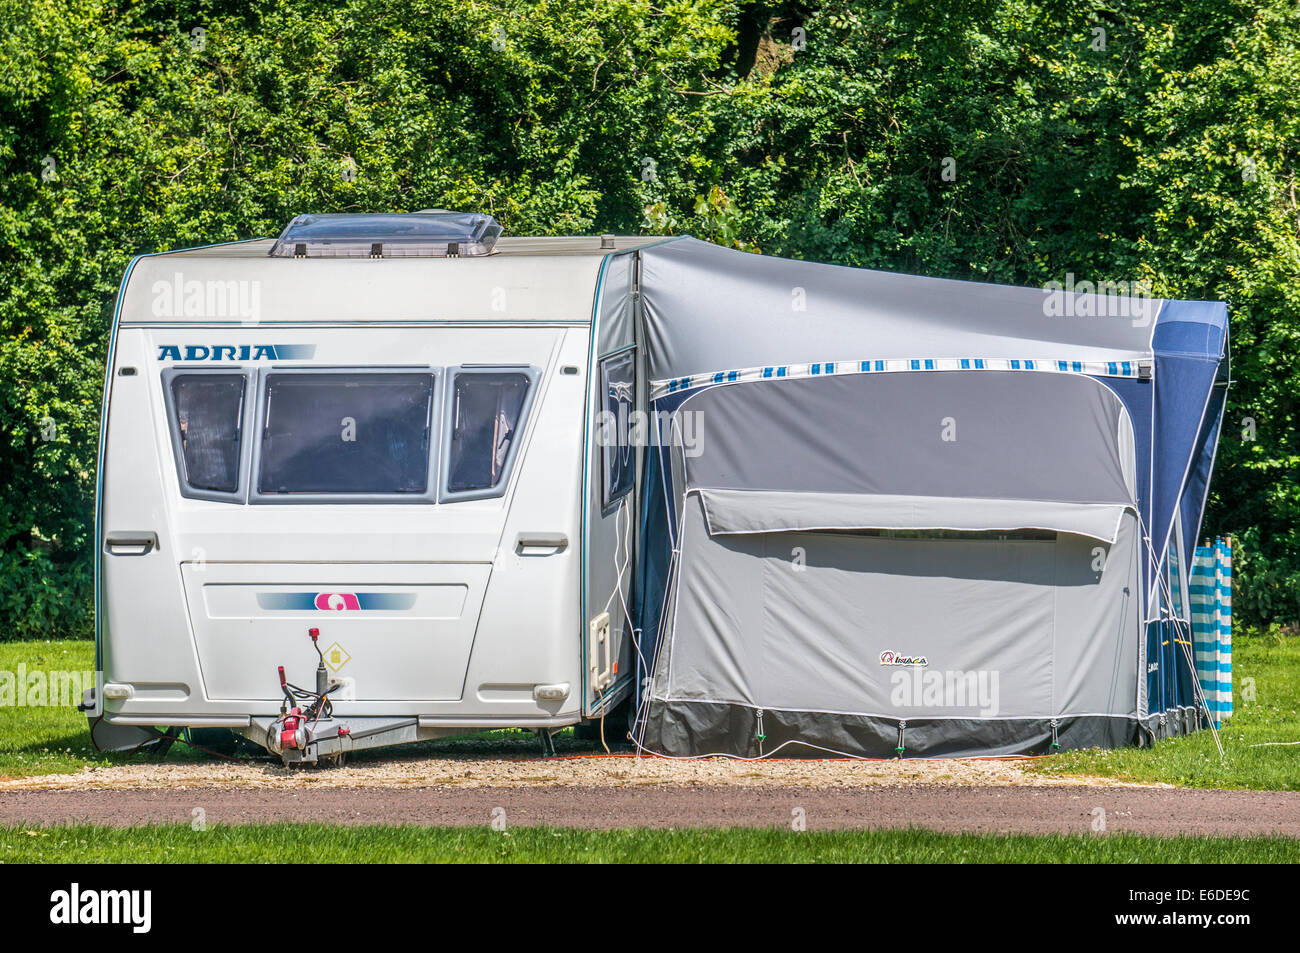 A silver Adria caravan and matching awning on a Caravan Club campsite pitch in England, UK. - Stock Image